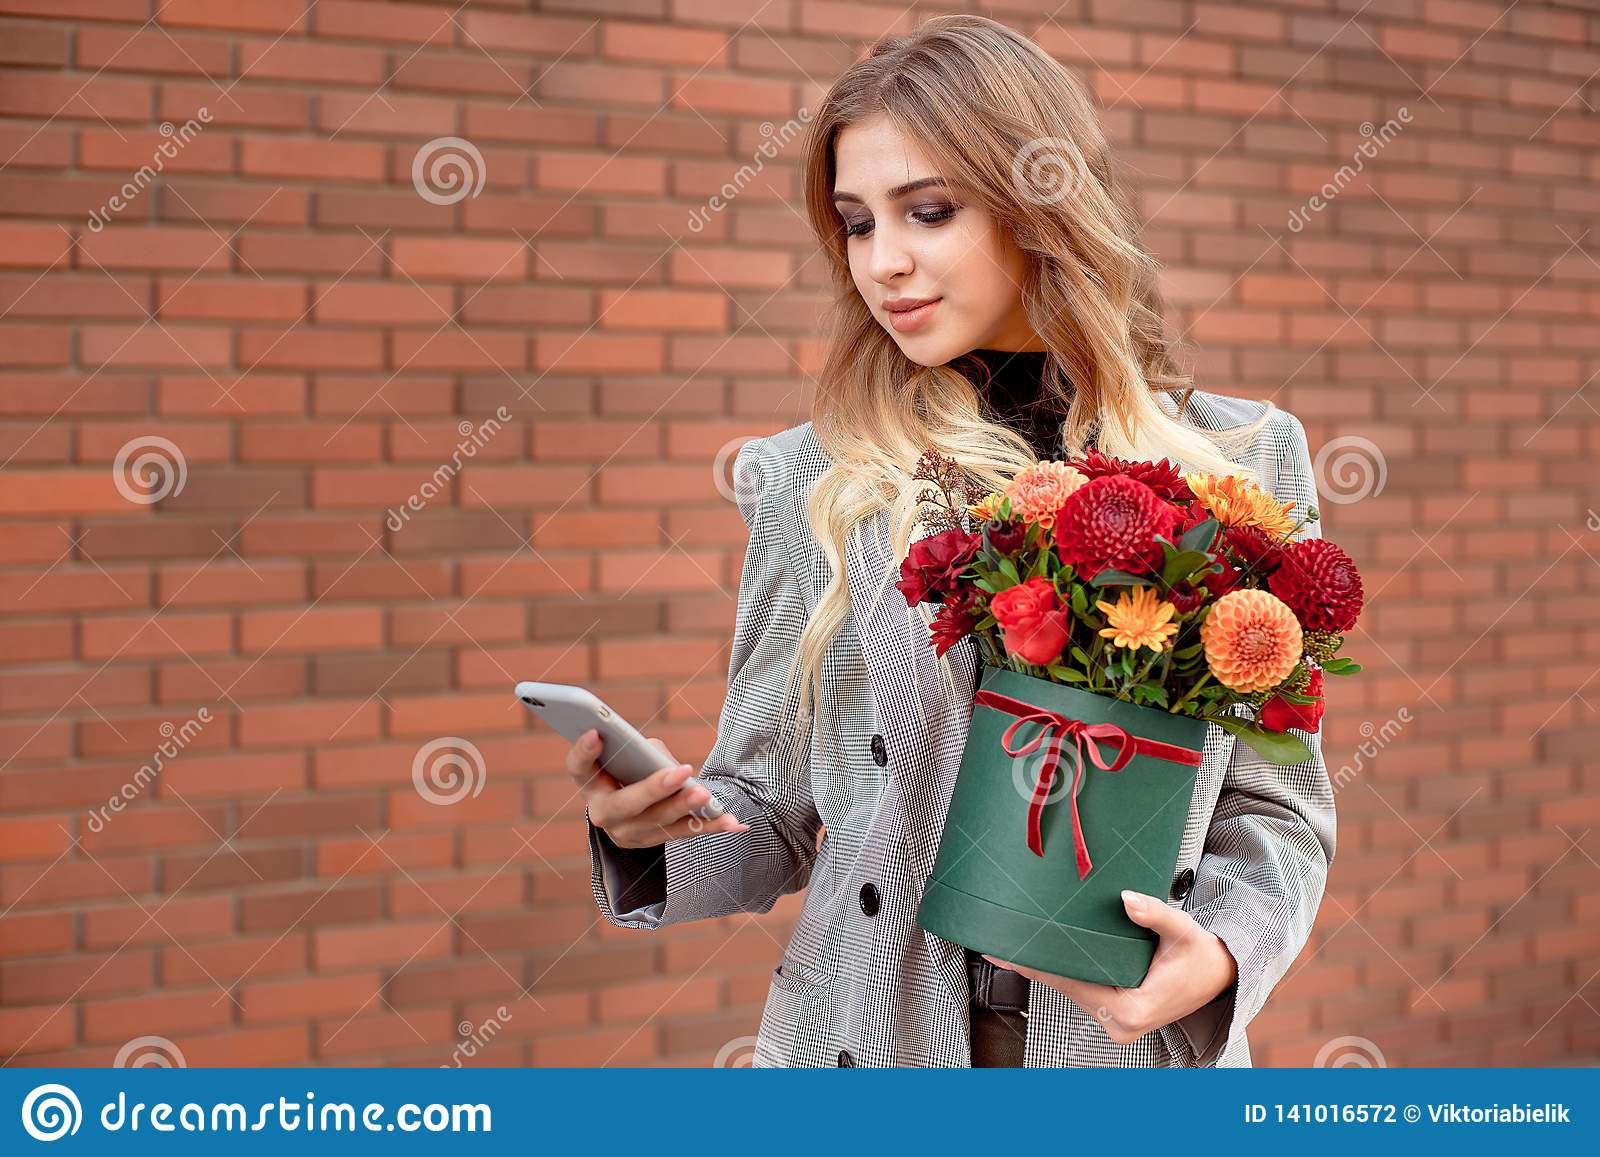 Beautiful girl looks into the phone in her hands holding a green box with bright colors.